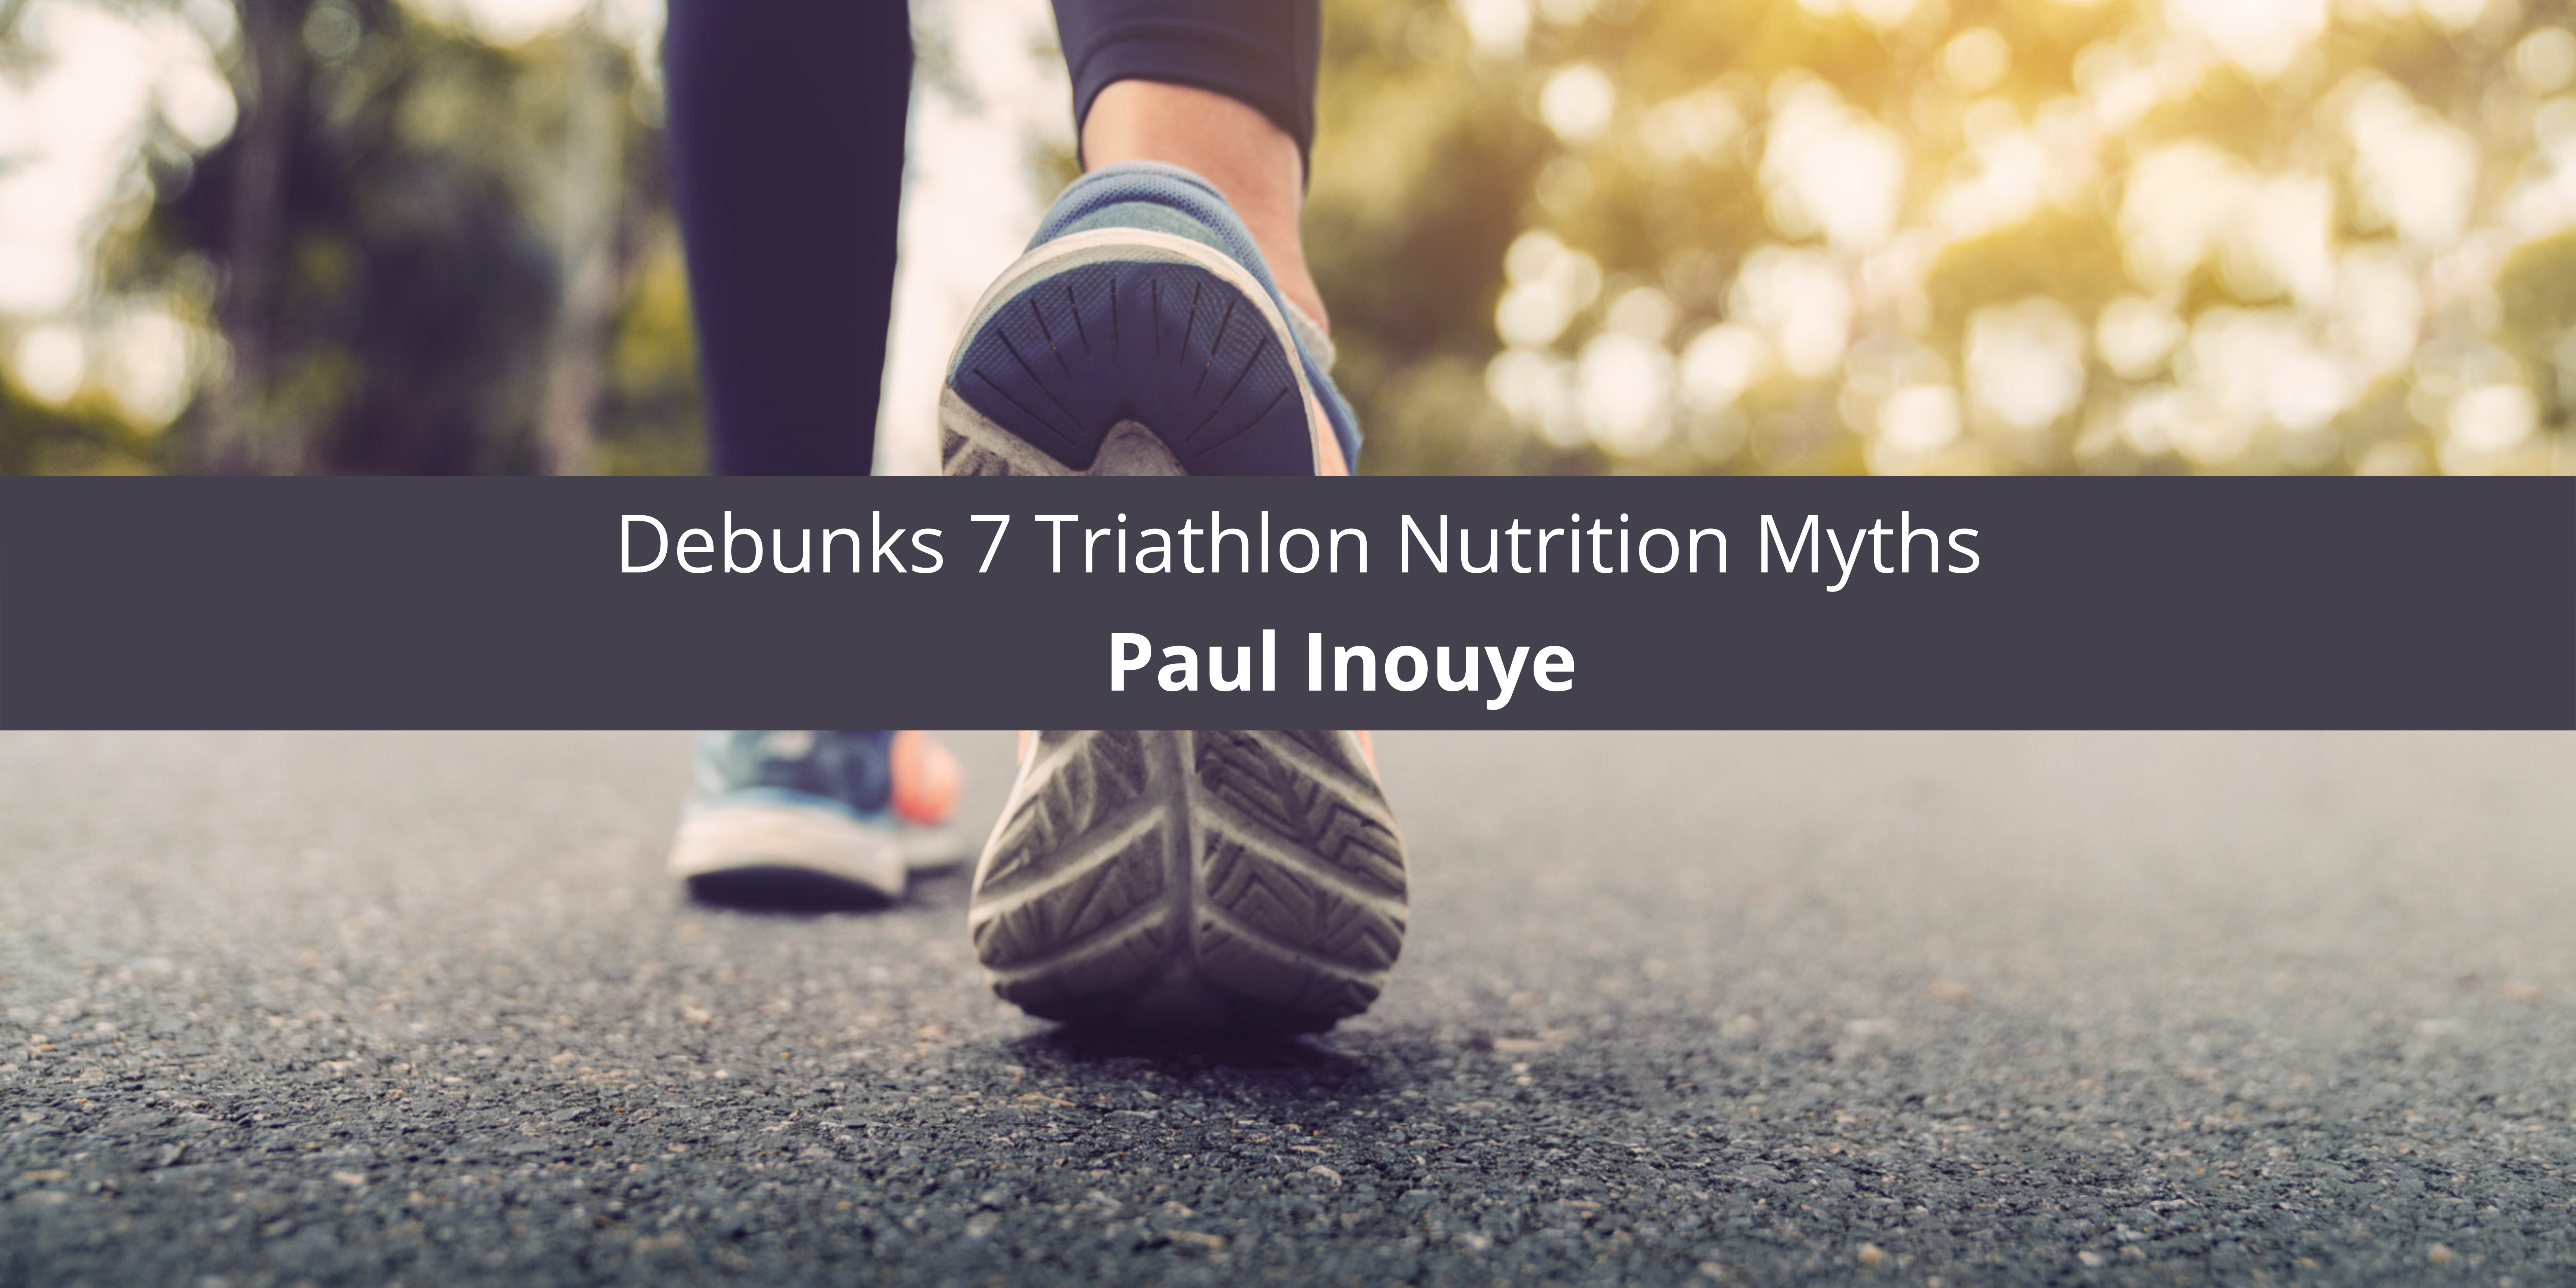 Paul Inouye shares 7 tips when training for your first marathon.